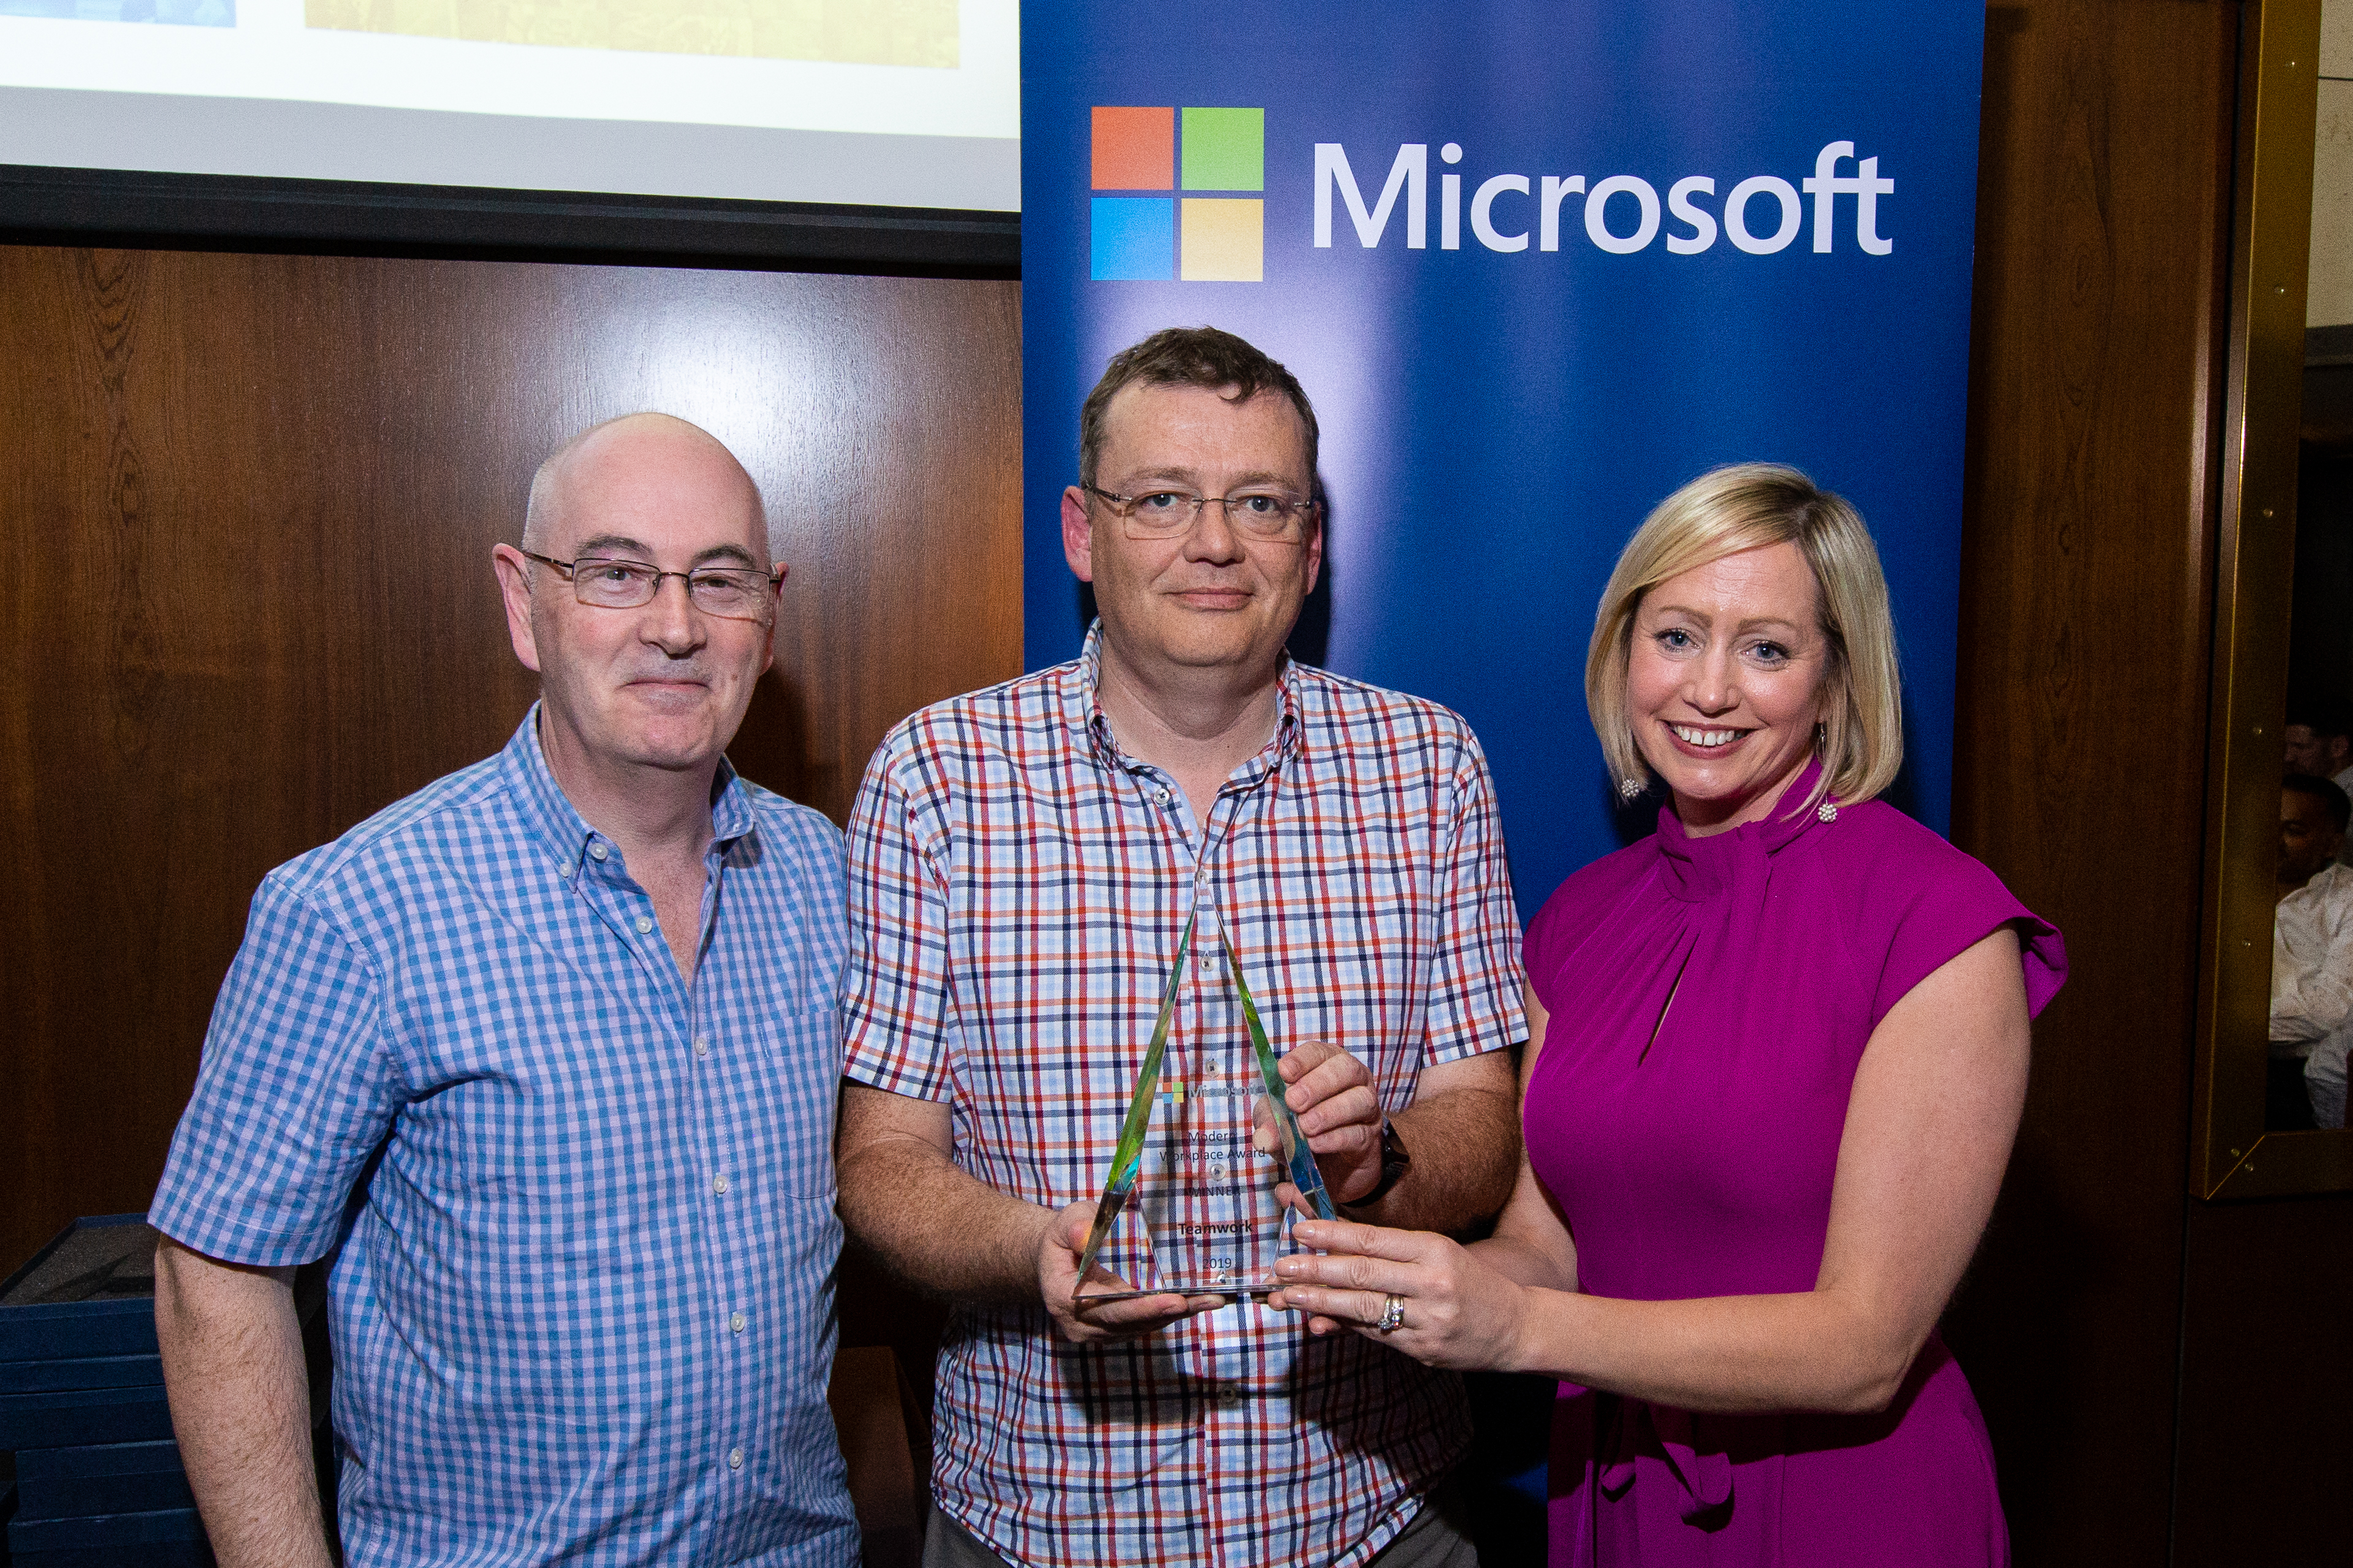 Michael Hutchinson, Operations Director, Nigel Mulholland, Managing Director and Aisling Curtis from Microsoft